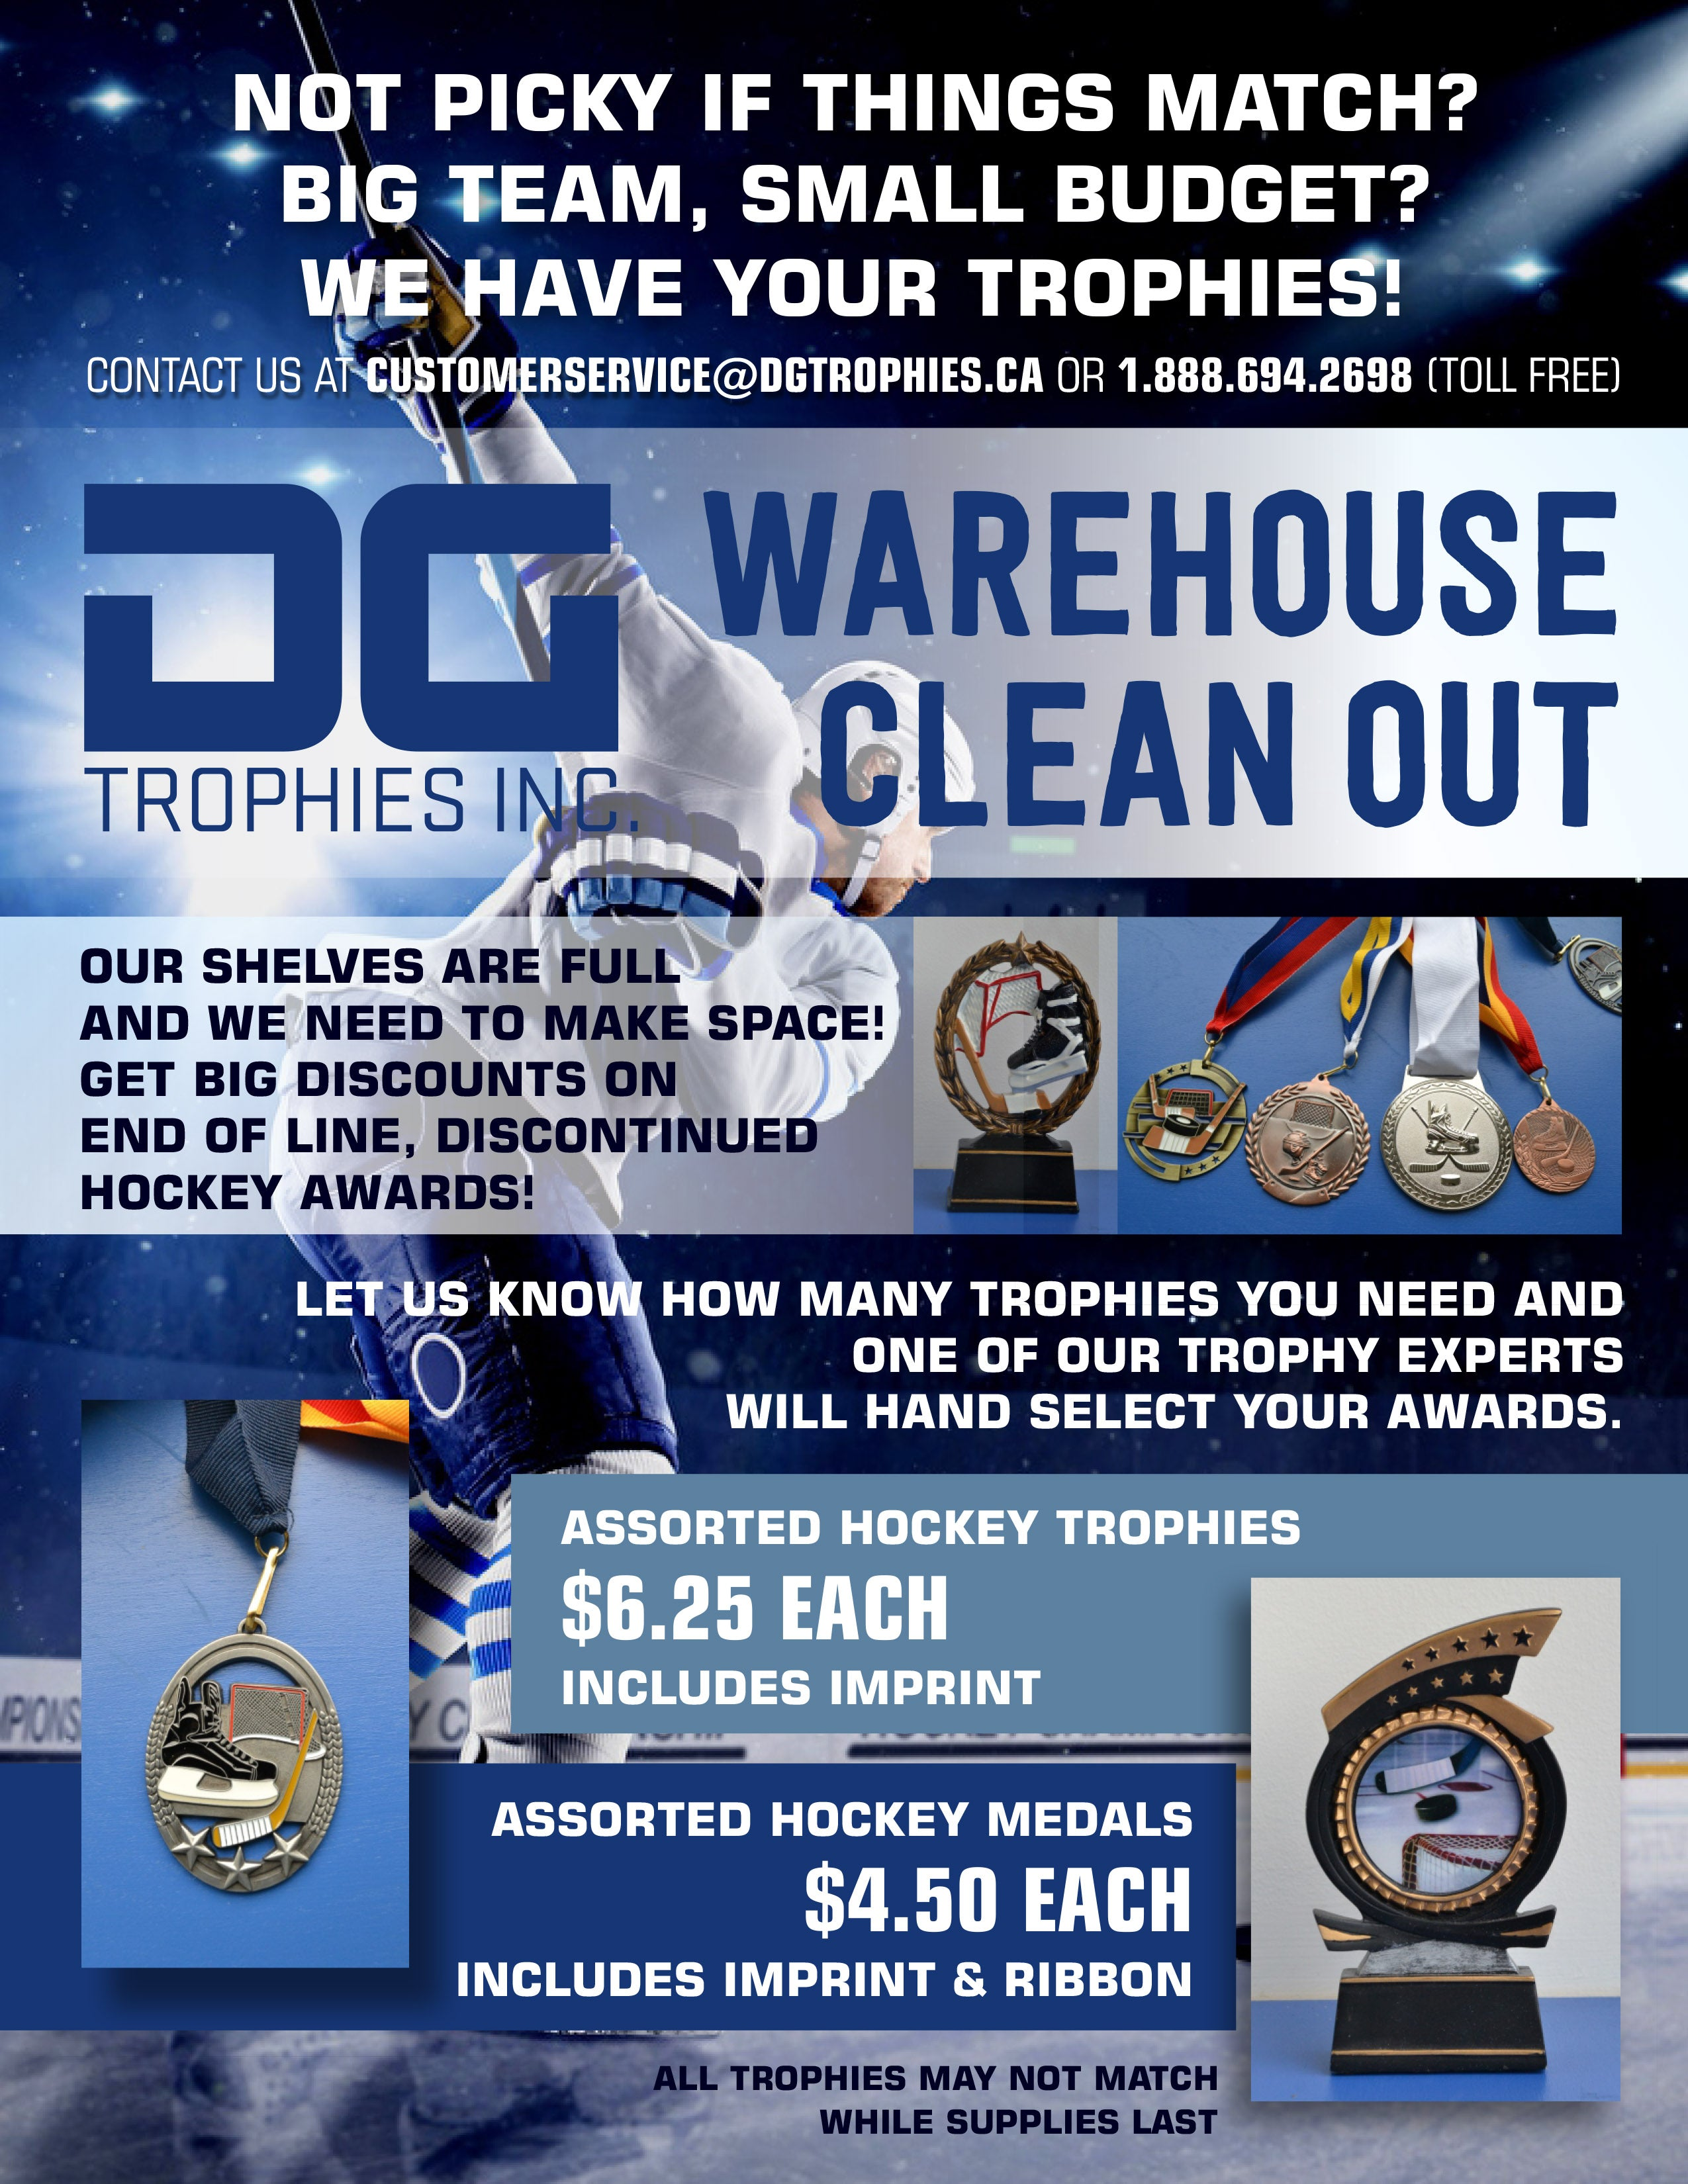 DG-Trophies-Promotion